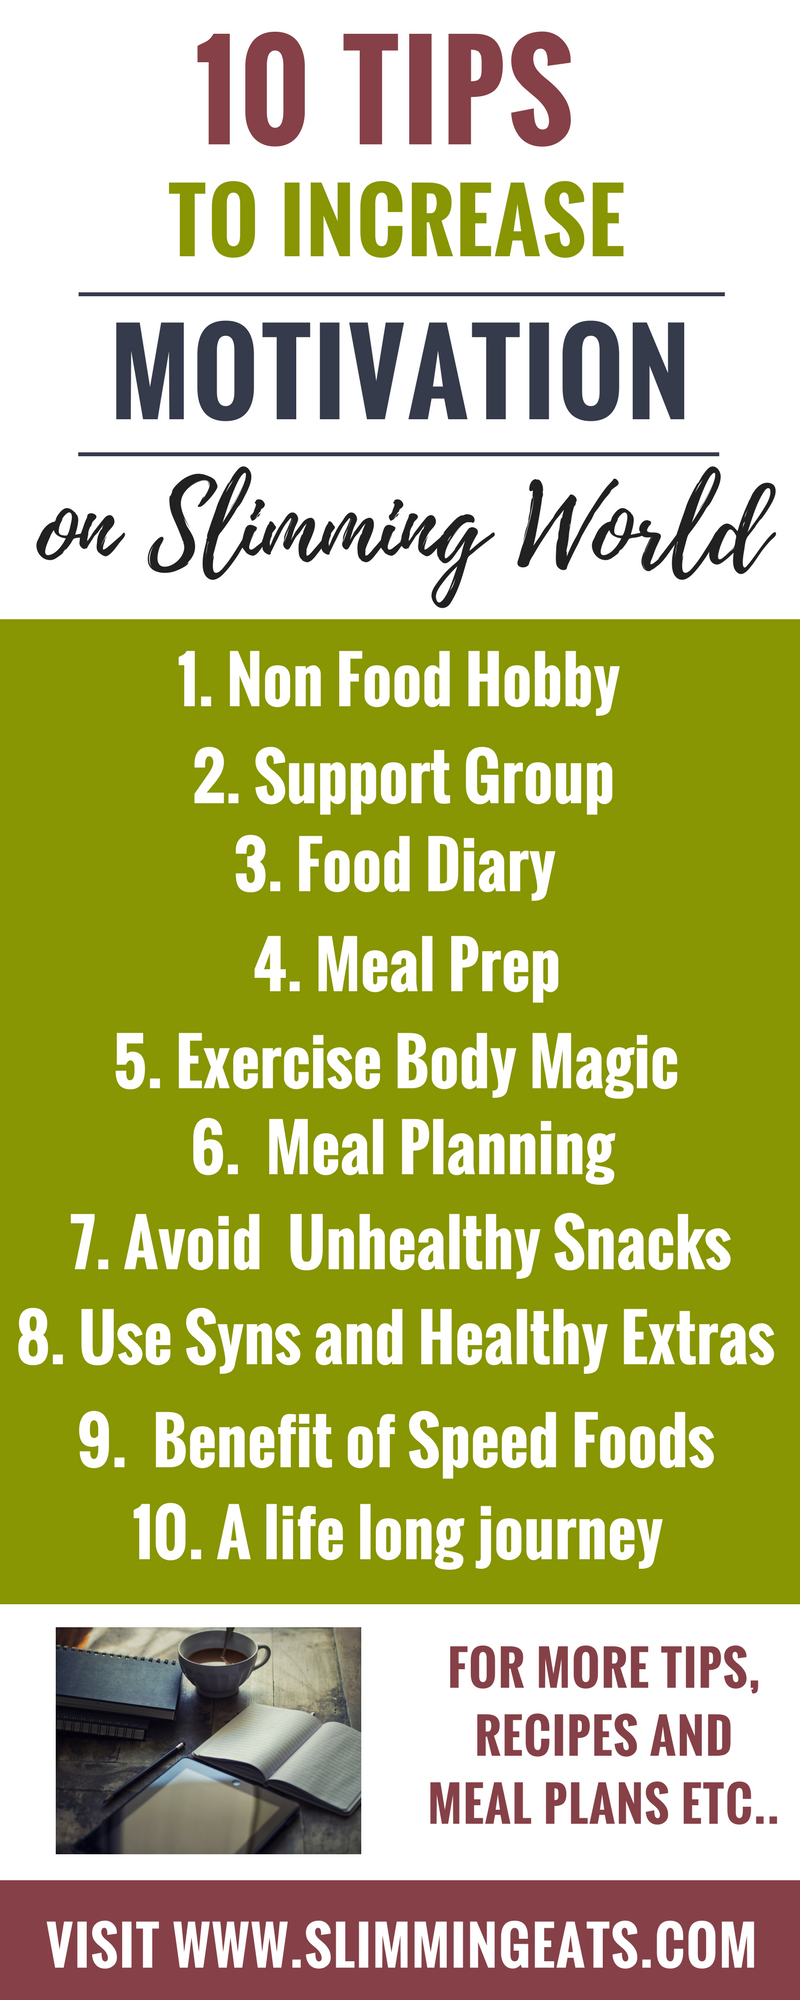 10 Tips to Increase Motivation on Slimming World - SLIMMINGEATS